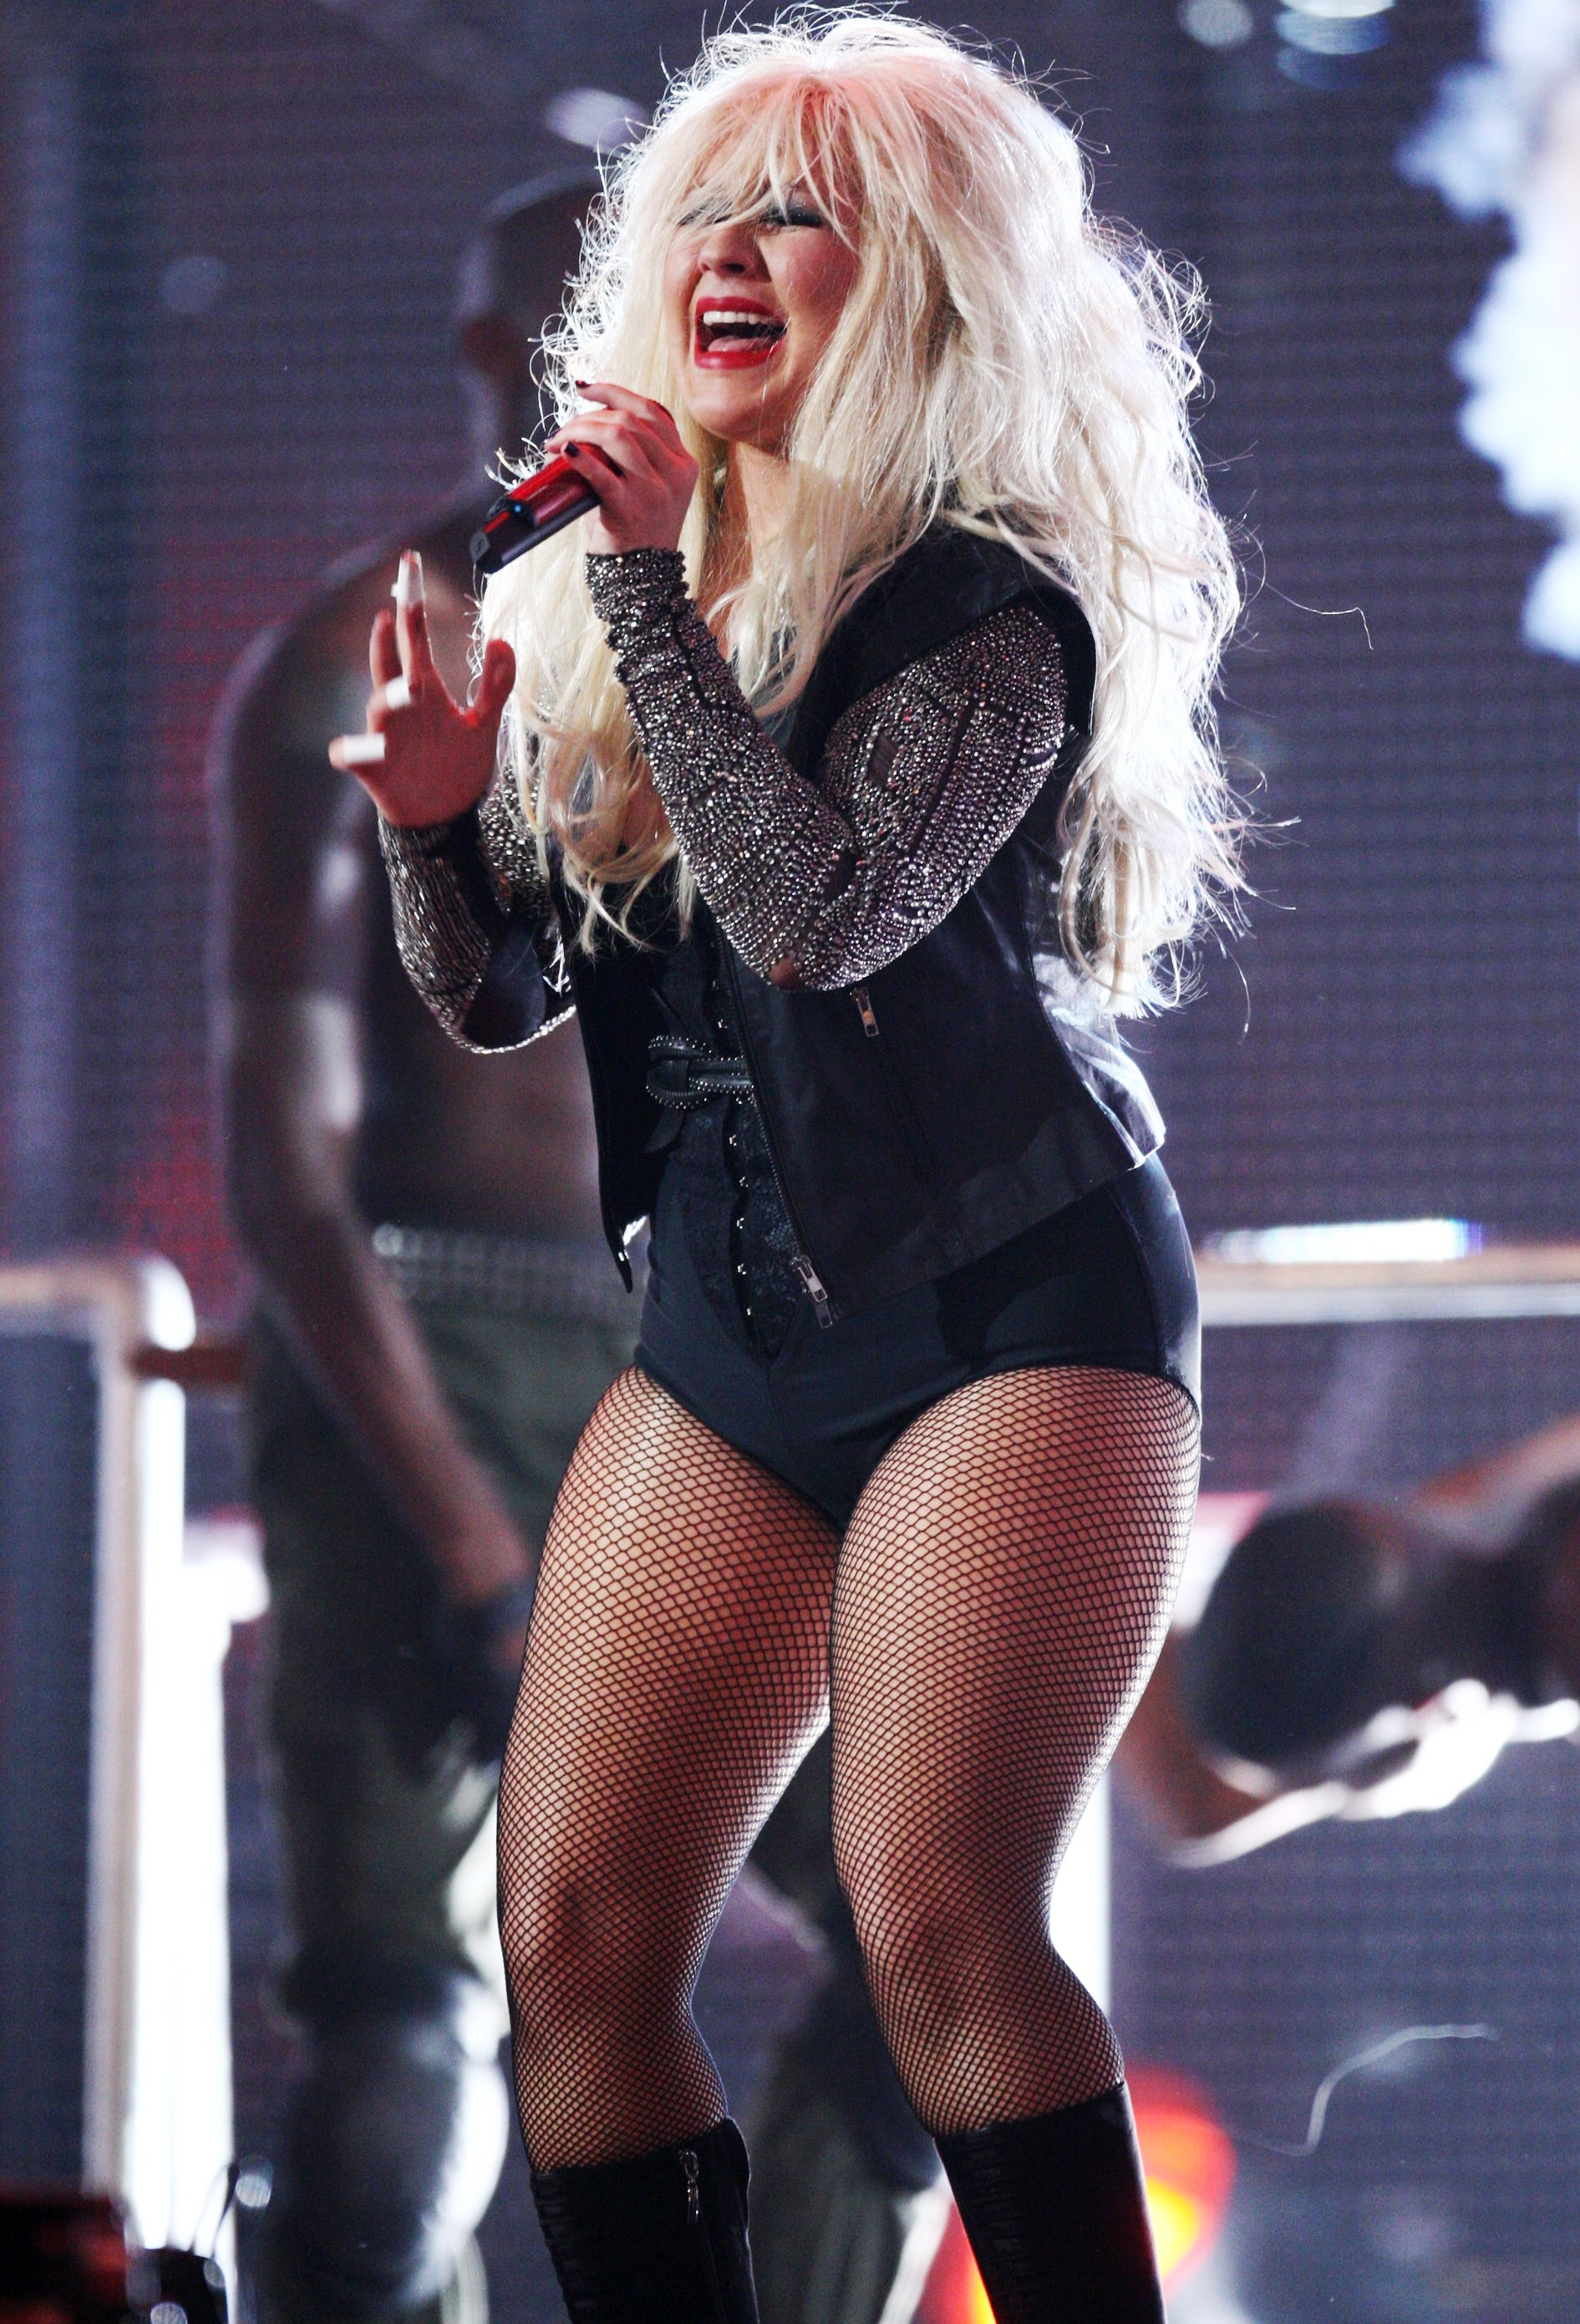 christina-aguilera-taking-a-shit-on-stage